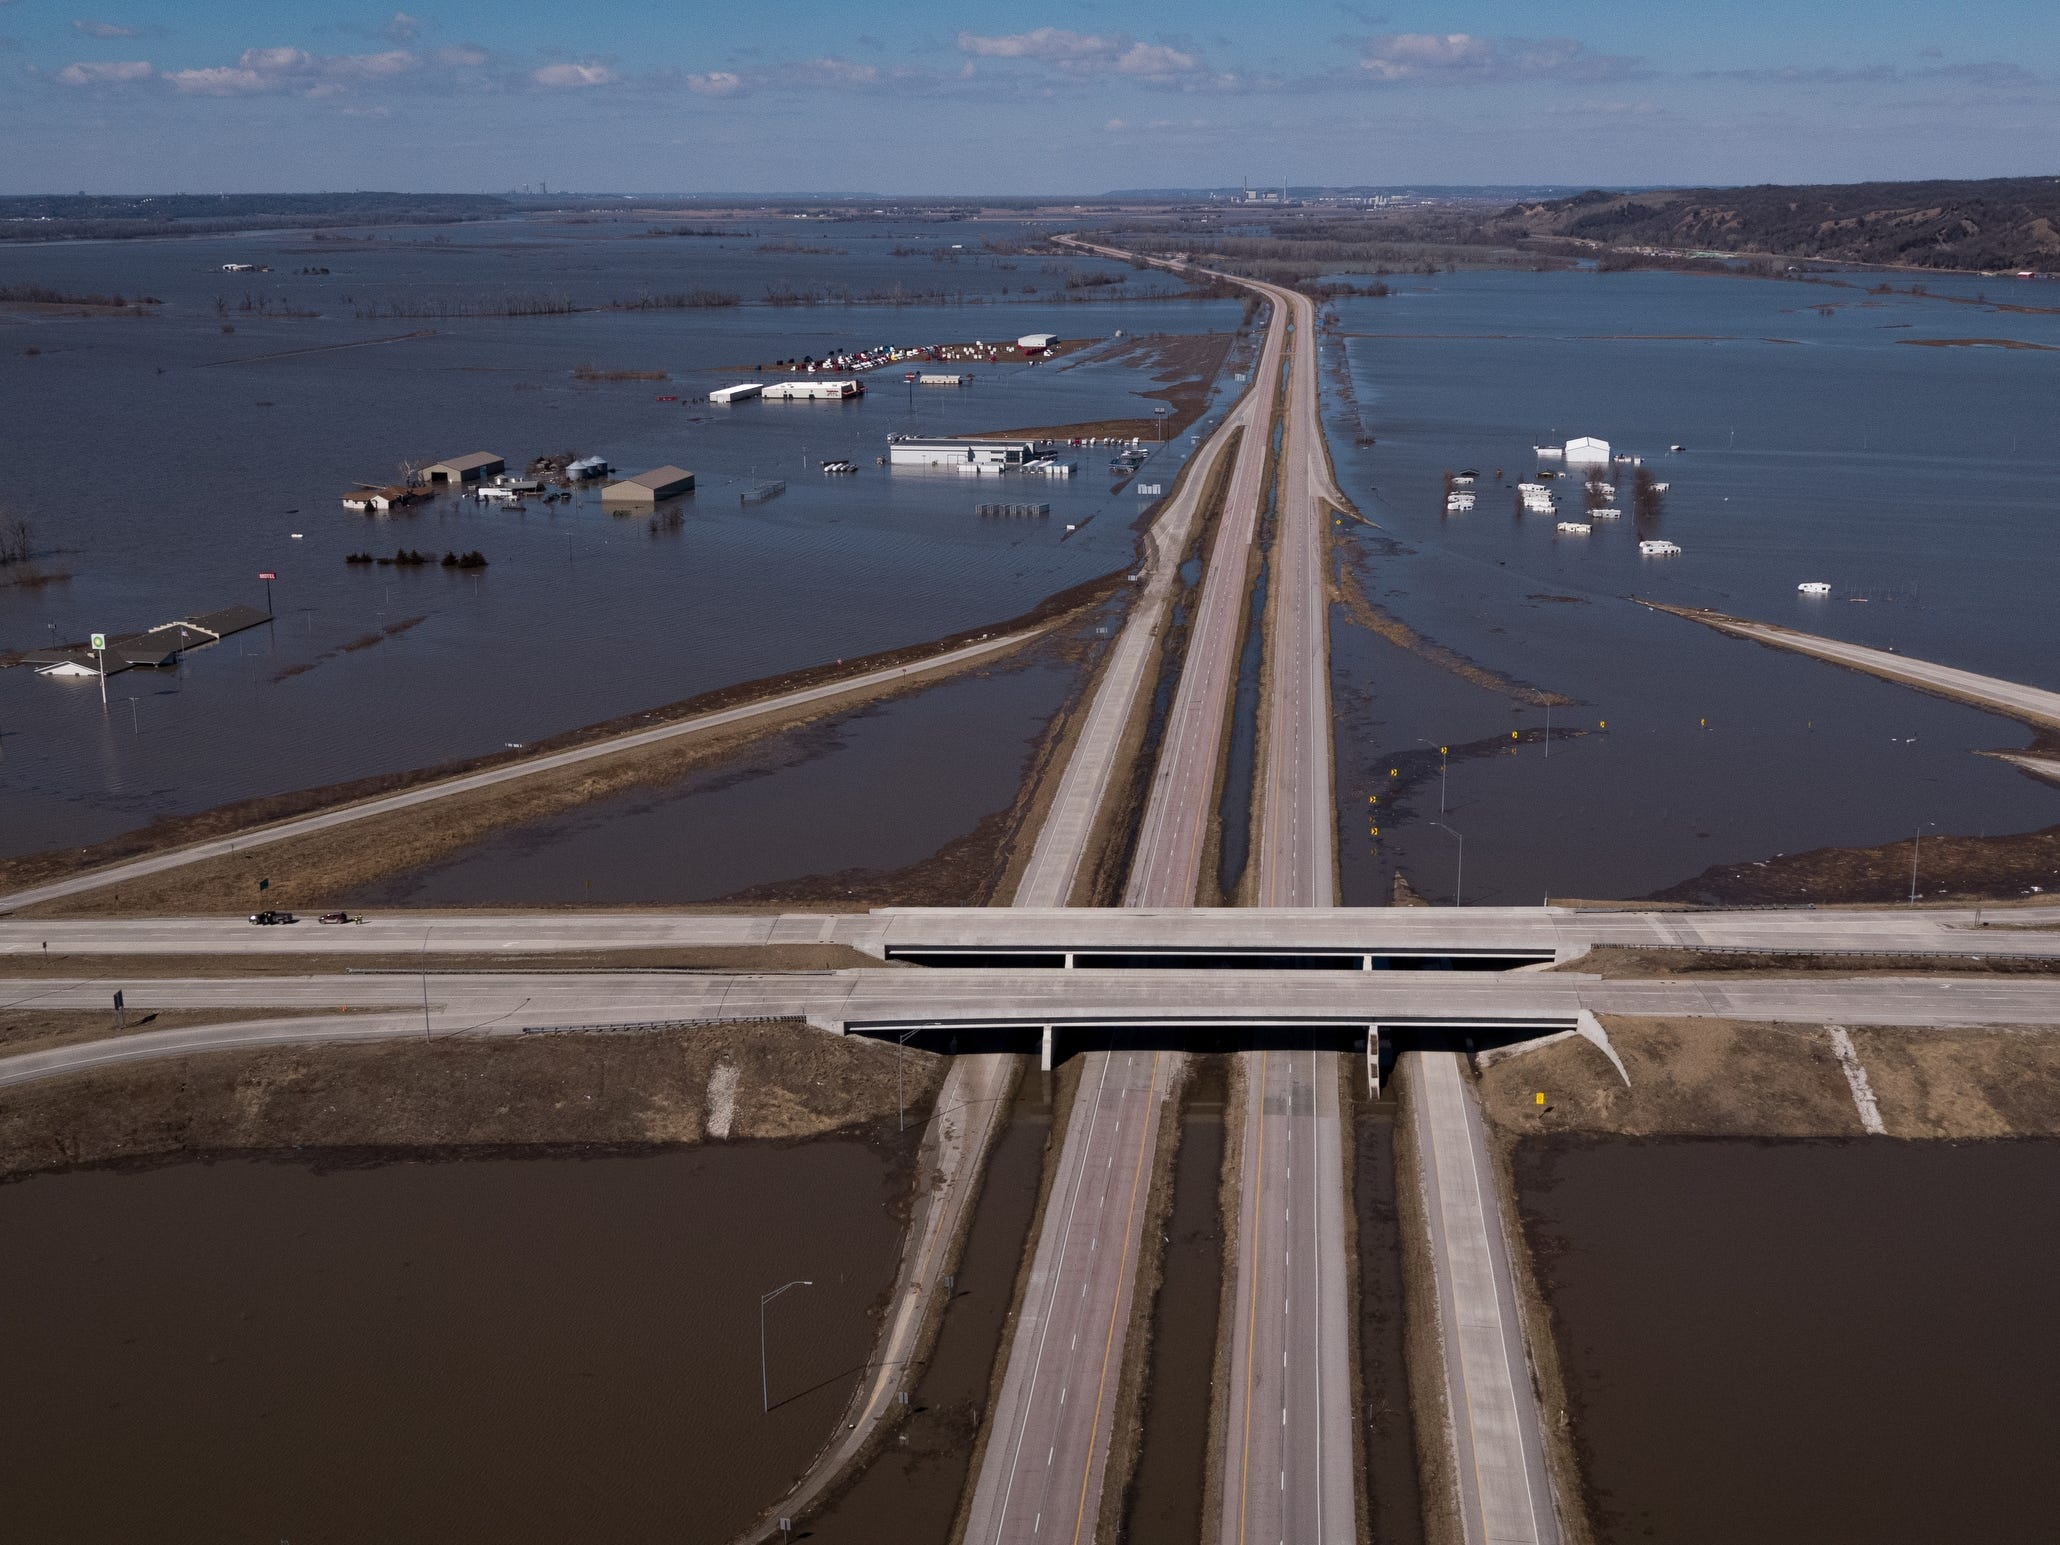 Looking north along I-29 at the intersection of Highway 34, flood waters continue to overwhelm the surrounding communities with it not expected to start to recede until later this week on Wednesday, March 20, 2019, in Mills County.